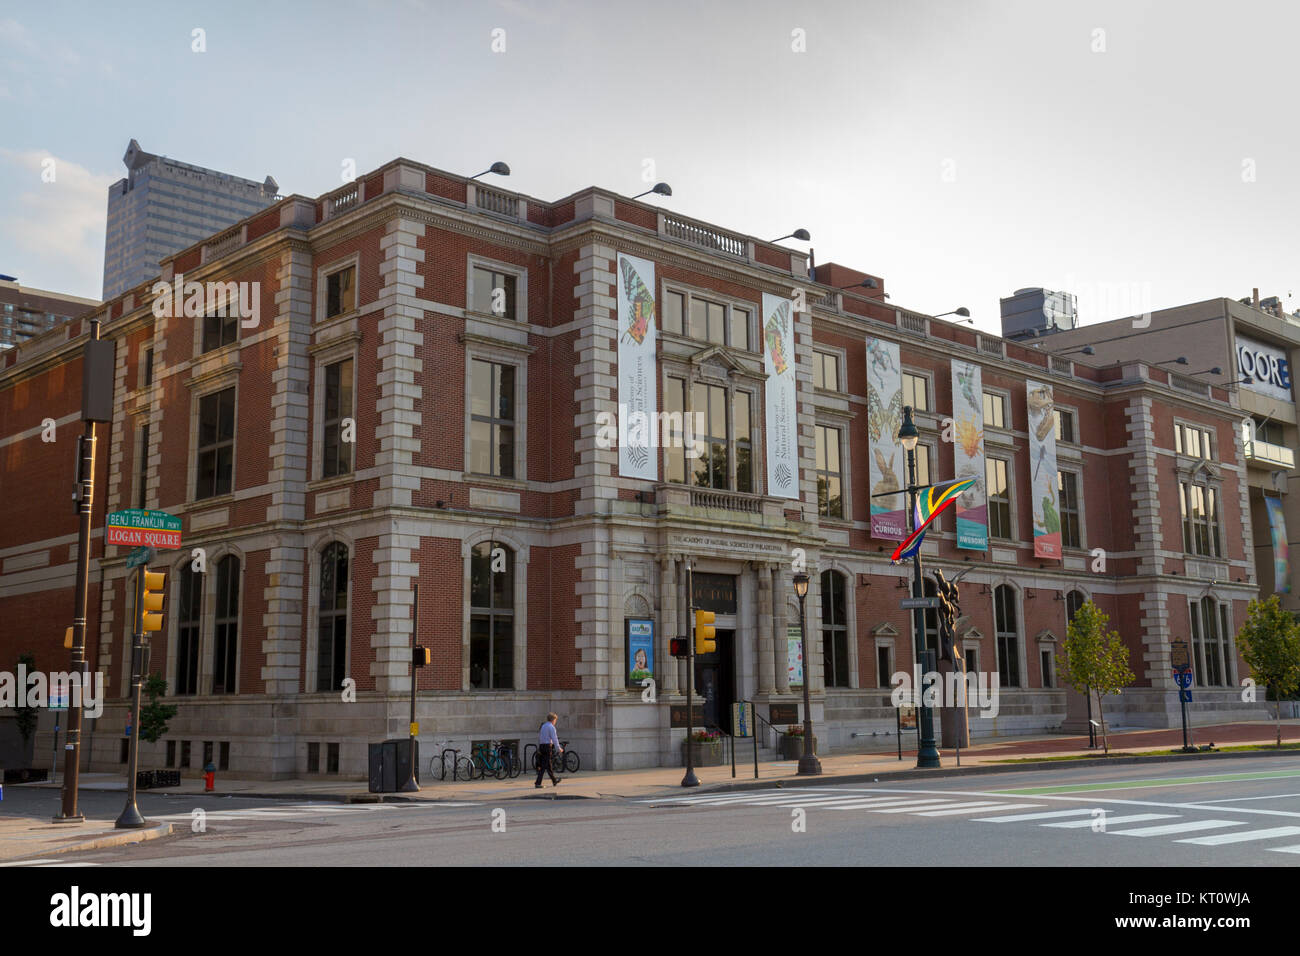 The Academy of Natural Sciences of Philadelphia building (Academy of Natural Sciences of Drexel University) in Philadelphia, - Stock Image